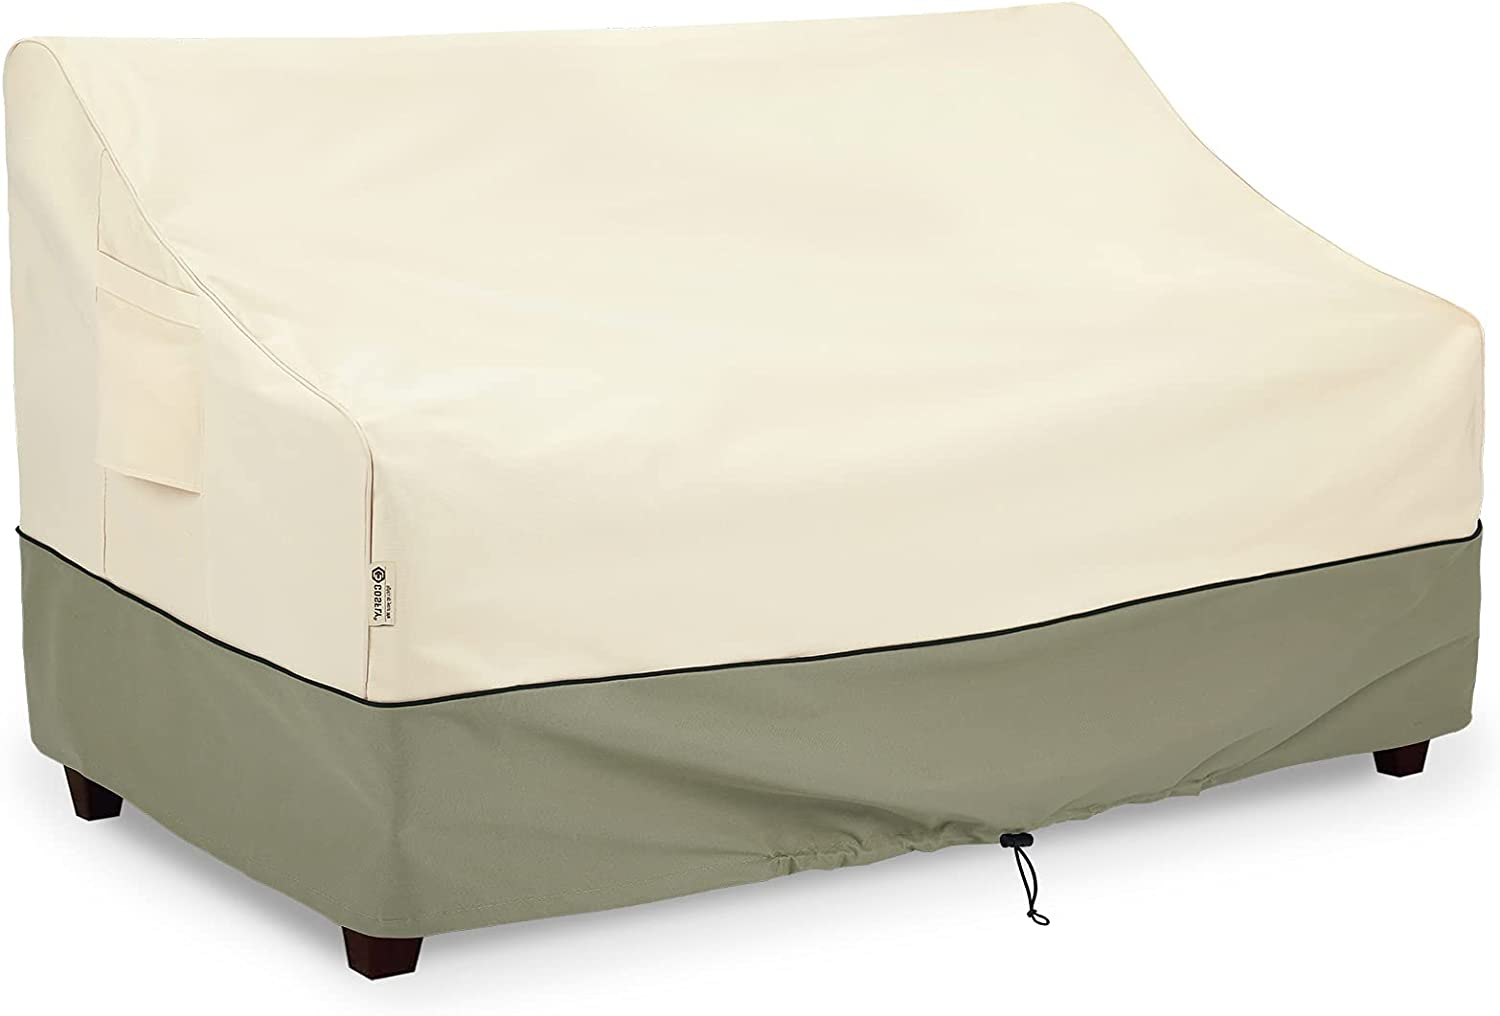 COSFLY Outdoor Furniture Patio Sofa Covers Waterproof, Outside Loveseat Covers Fits up to 58W x 32.5D x 31H inches